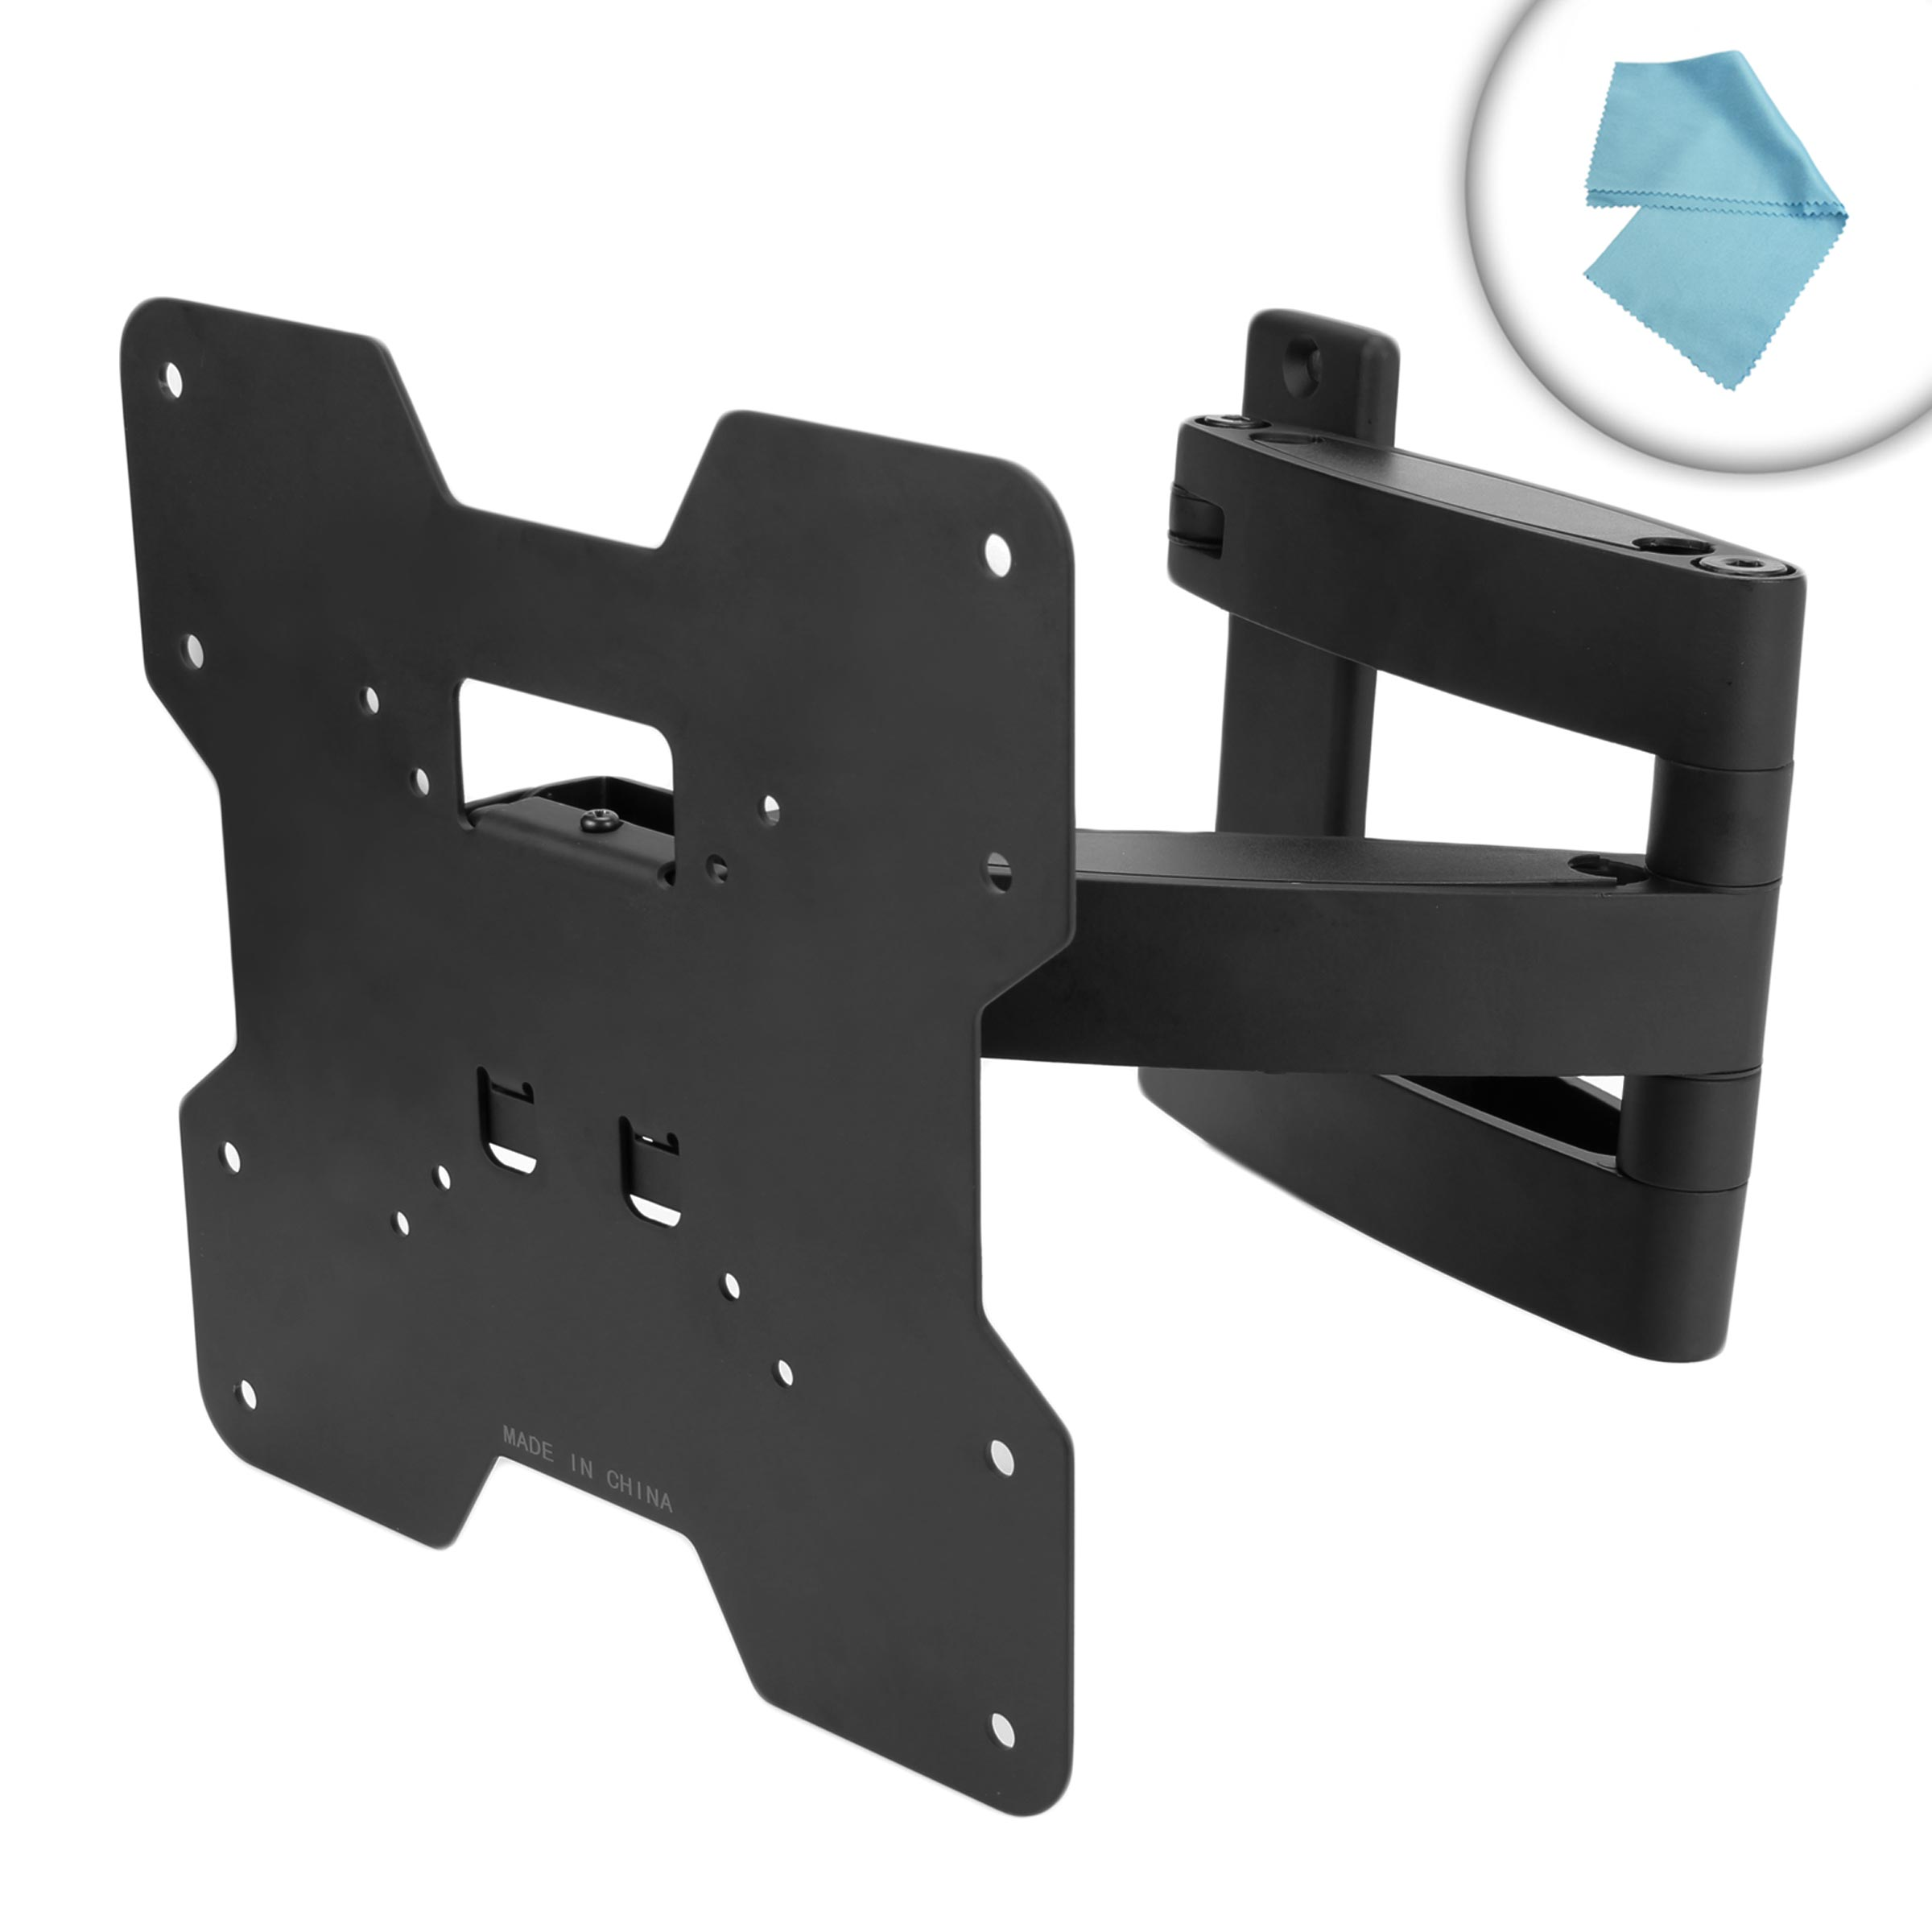 Led Wall Mounting Kit : SecureTV Television Wall Mount Bracket Kit with VESA 75, 100 & 200 Compatibility eBay